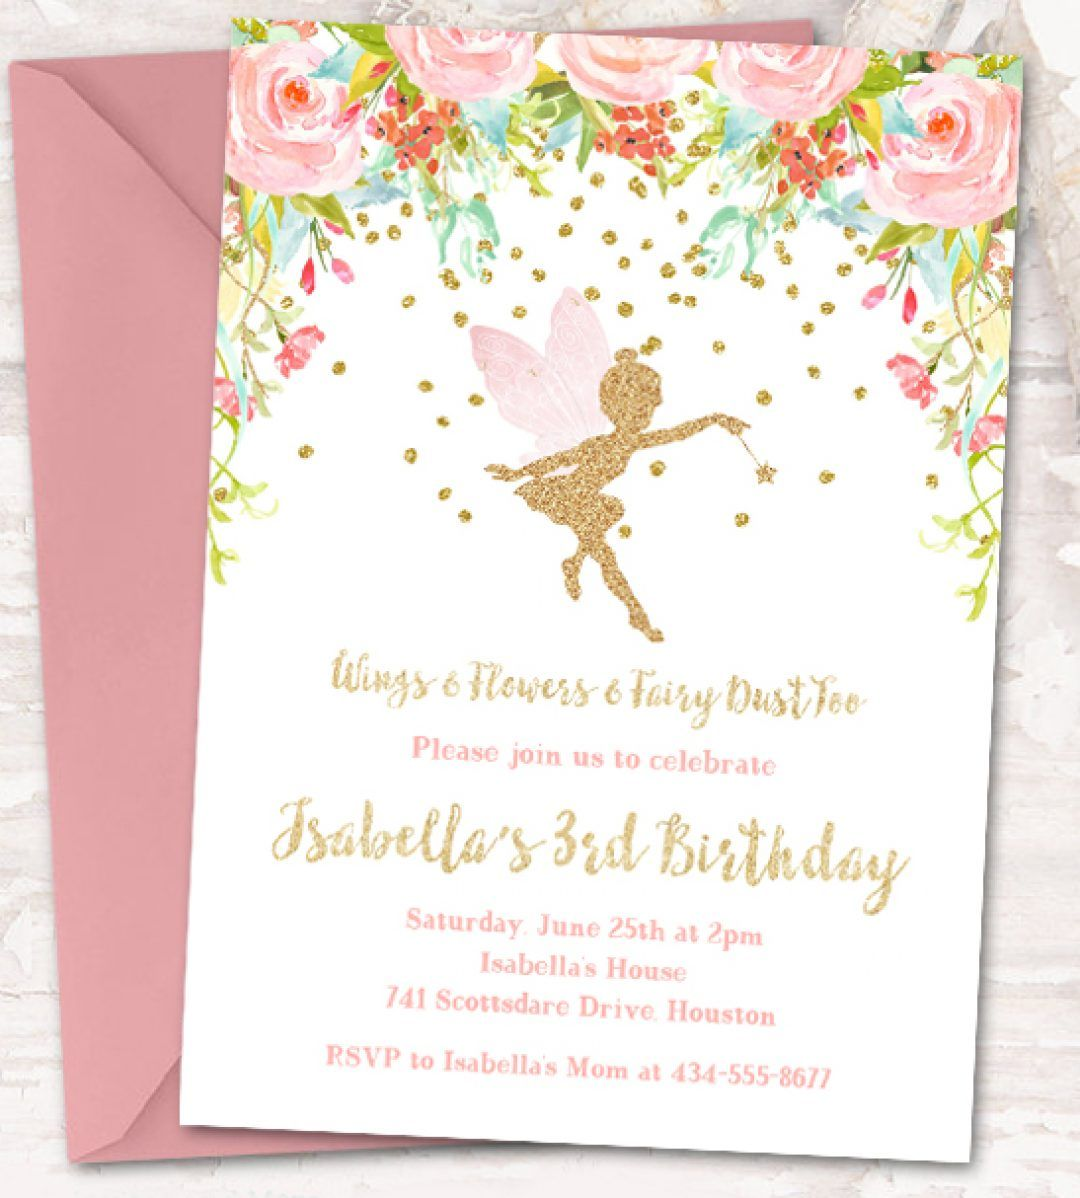 Free Editable Birthday Party Invitation Template - Fairy Dust